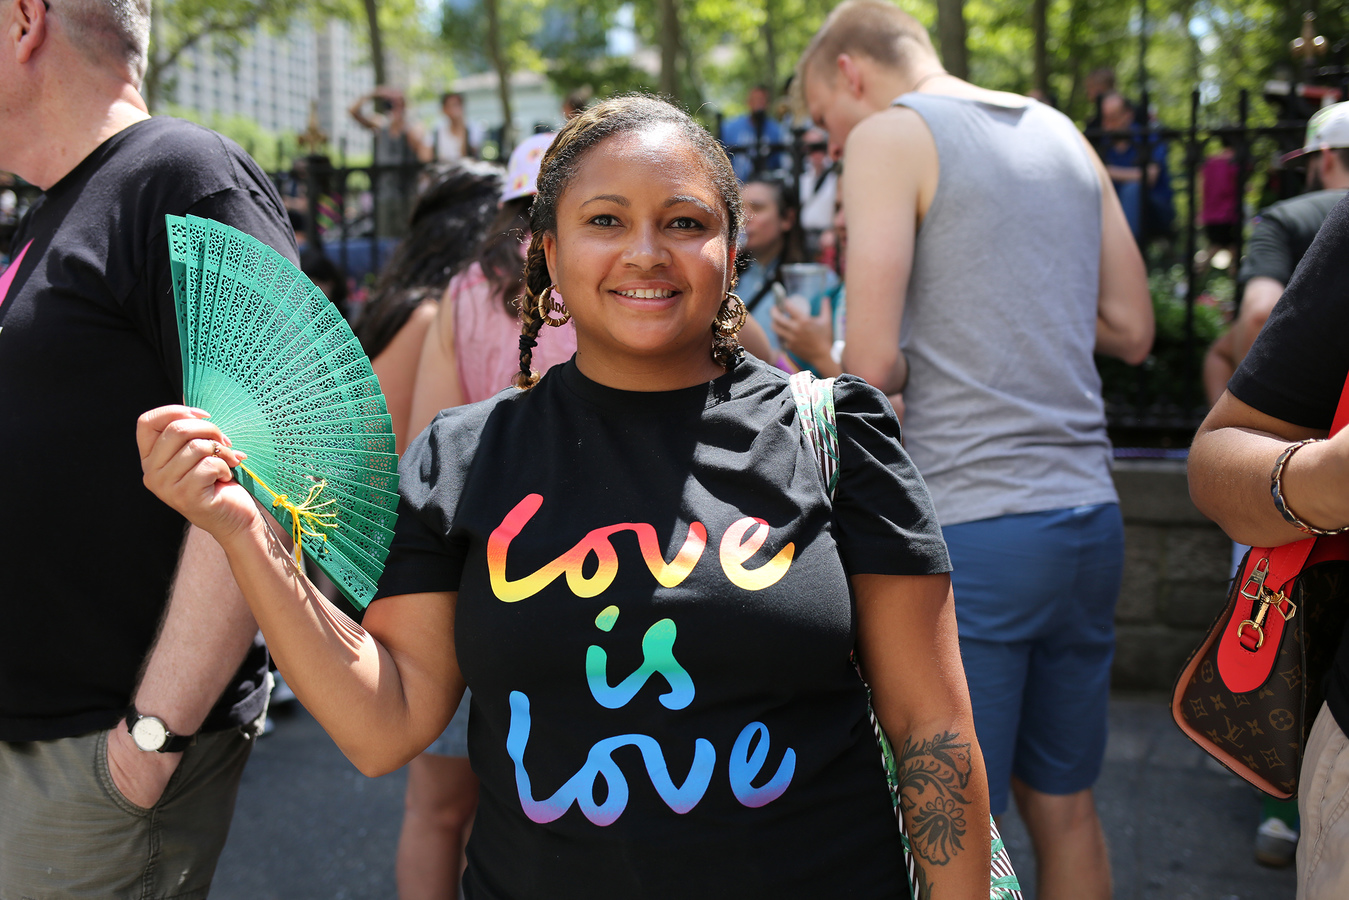 USA 2017- Queer Liberation March NYC 6/30/19